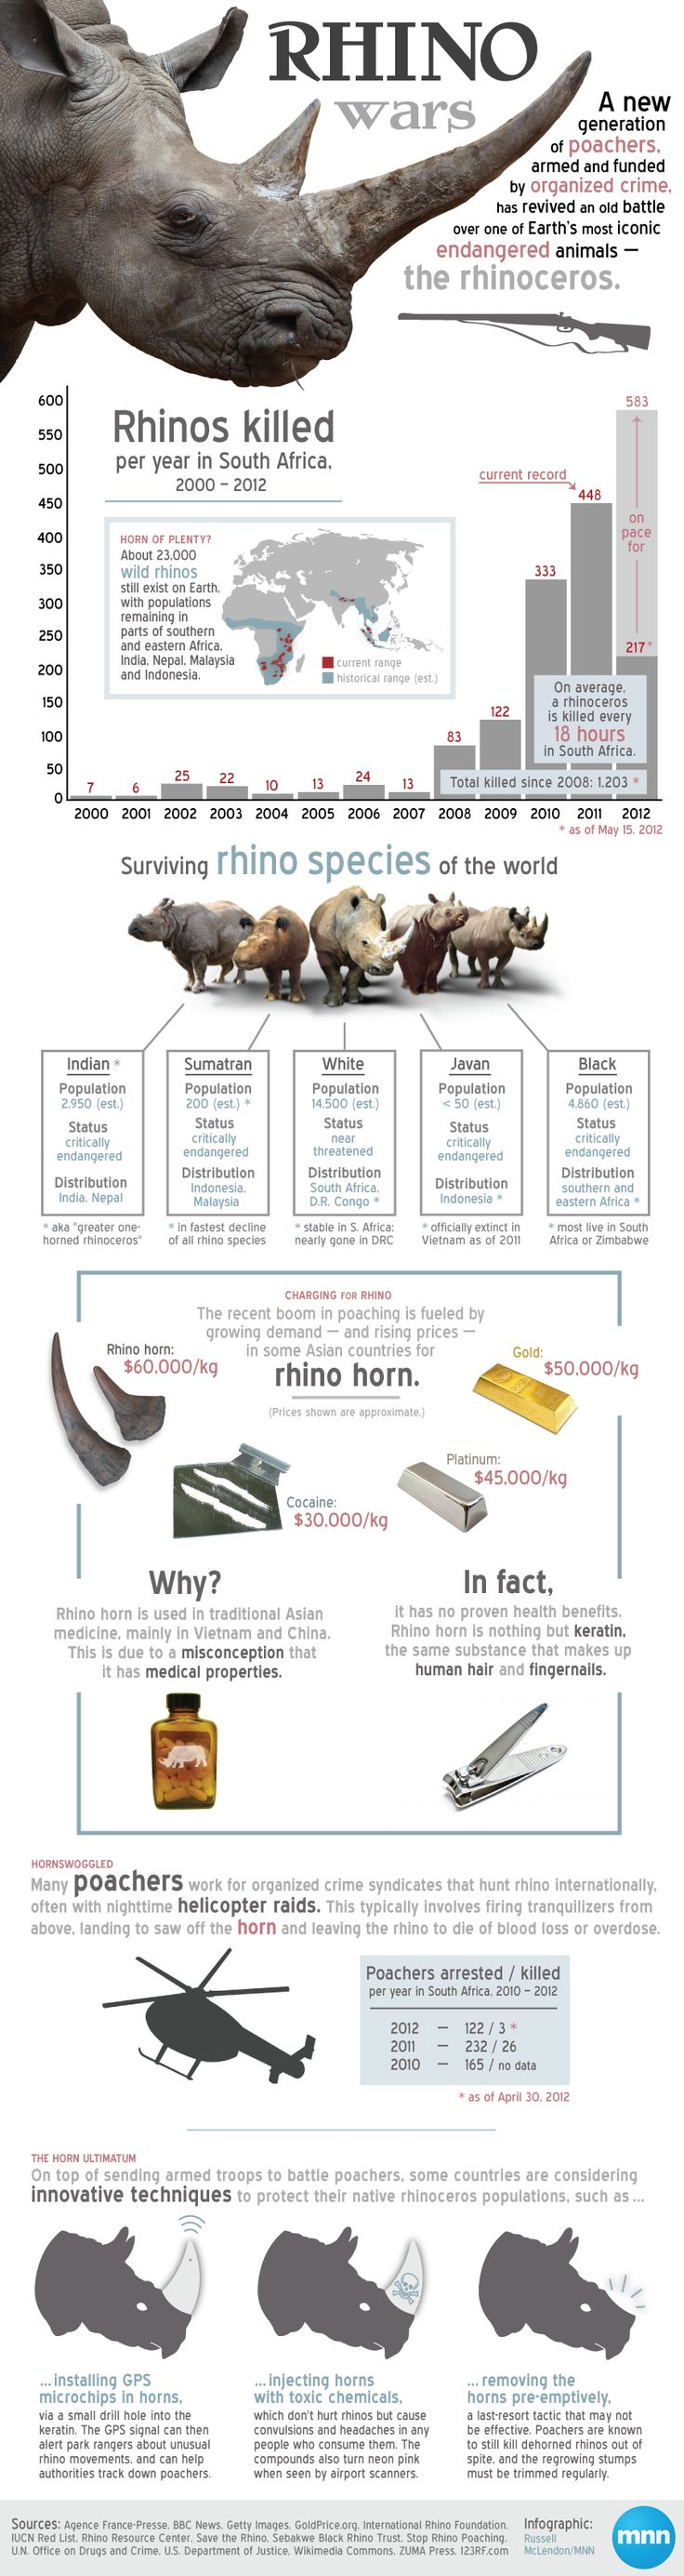 Infographic: Understanding the rhino wars | MNN - Mother Nature Network